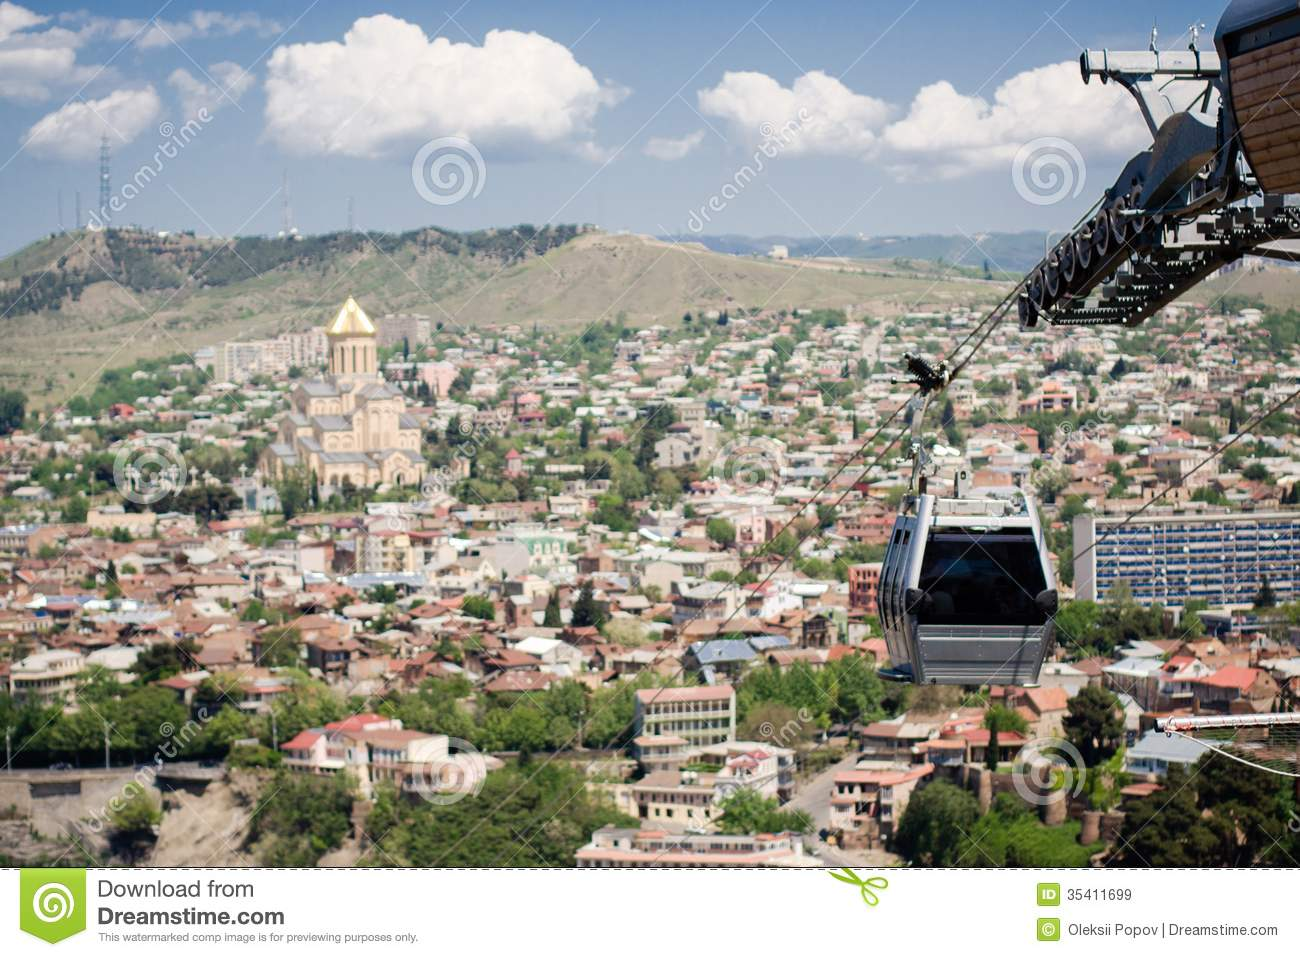 How To Buy A Car In Tbilisi Georgia: Tbilisi Cable Car Stock Image. Image Of Holy, Tbilisi